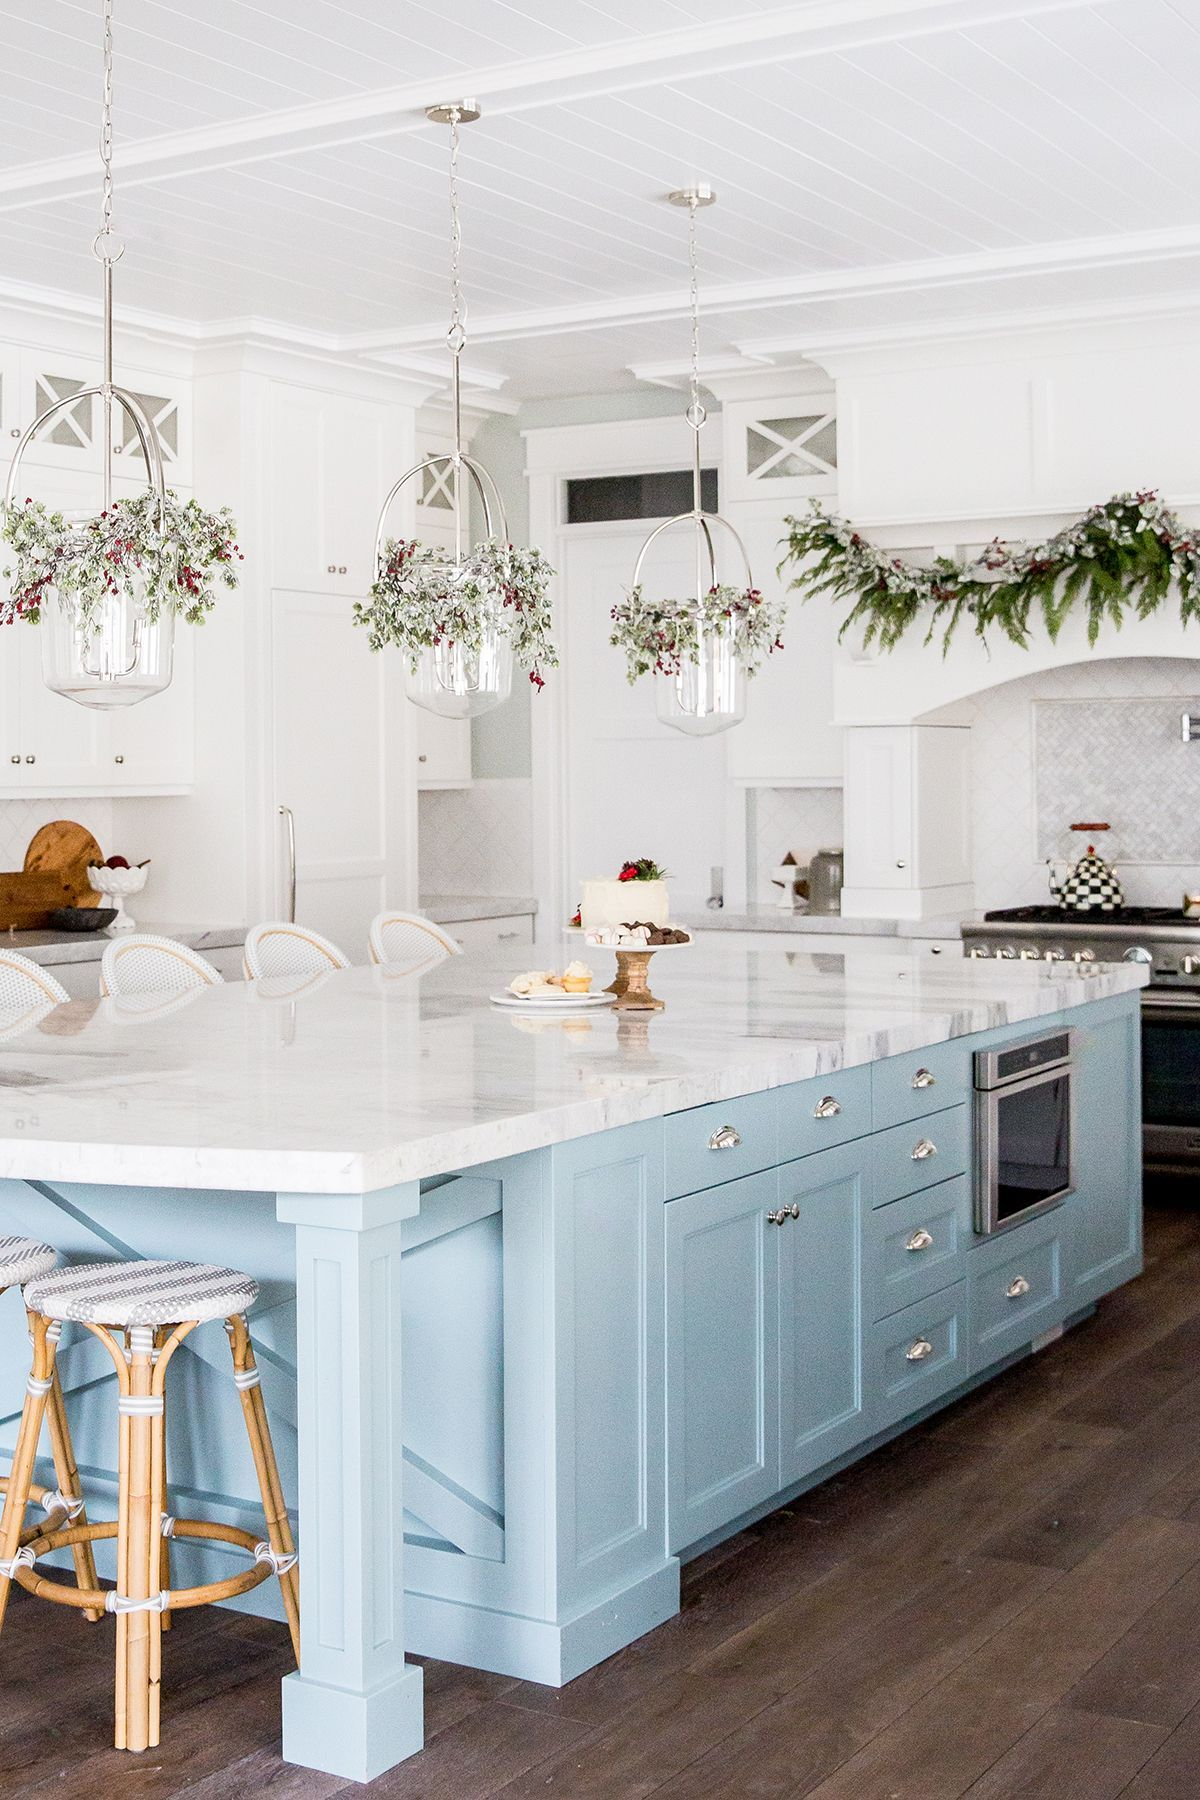 2017 In love with Rachel Parcell's parents kitchen which she helped decorate for christmas. Just stunning!Stunning Luxury  Stunning Luxury is the second studio album by English band Snapped Ankles. It was released on 1 March 2019 under The Leaf Label. Described as a